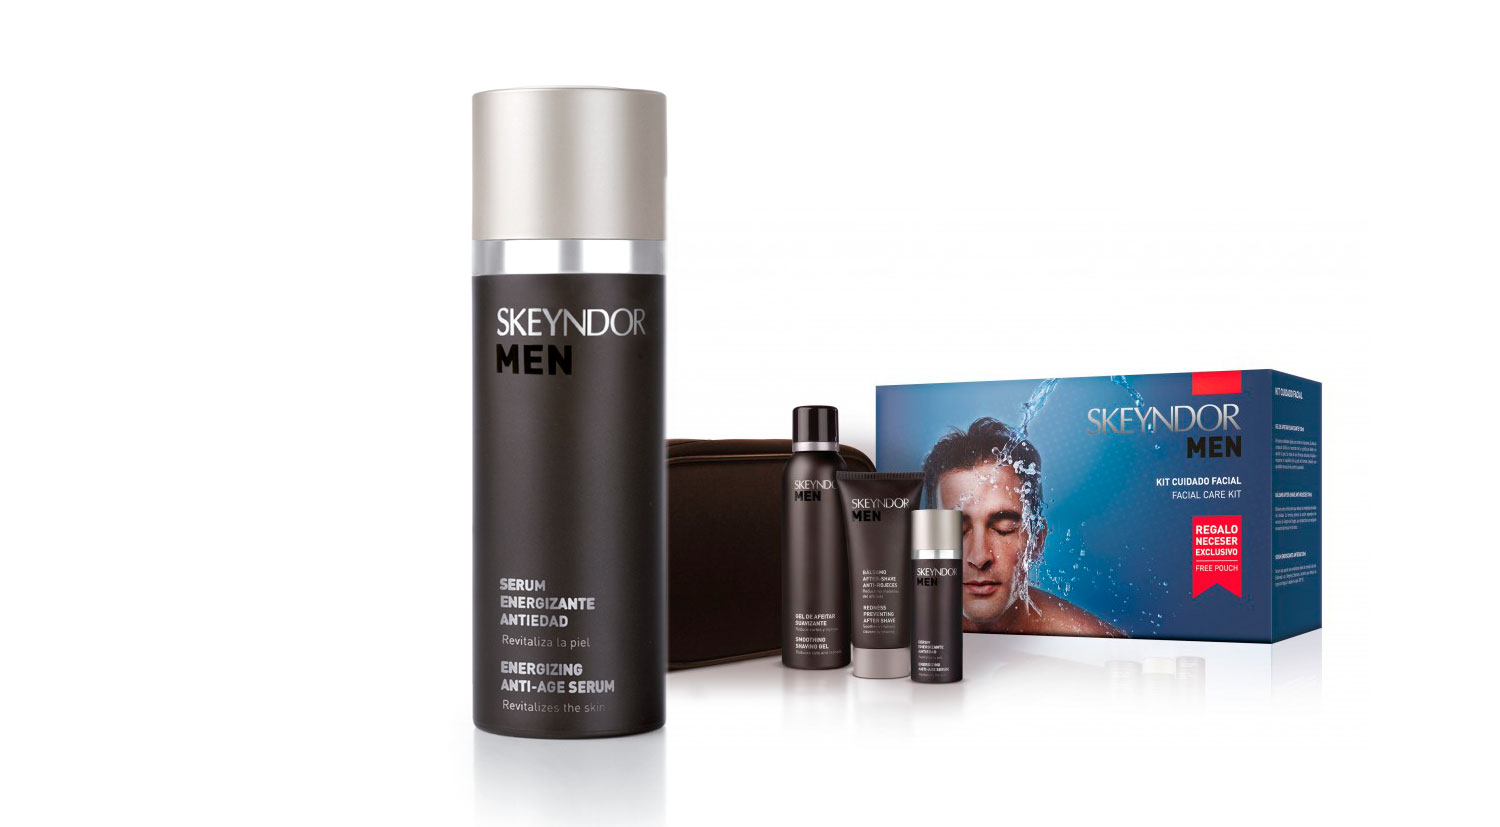 Serum Energizante Anti-edad Skeyndor Men